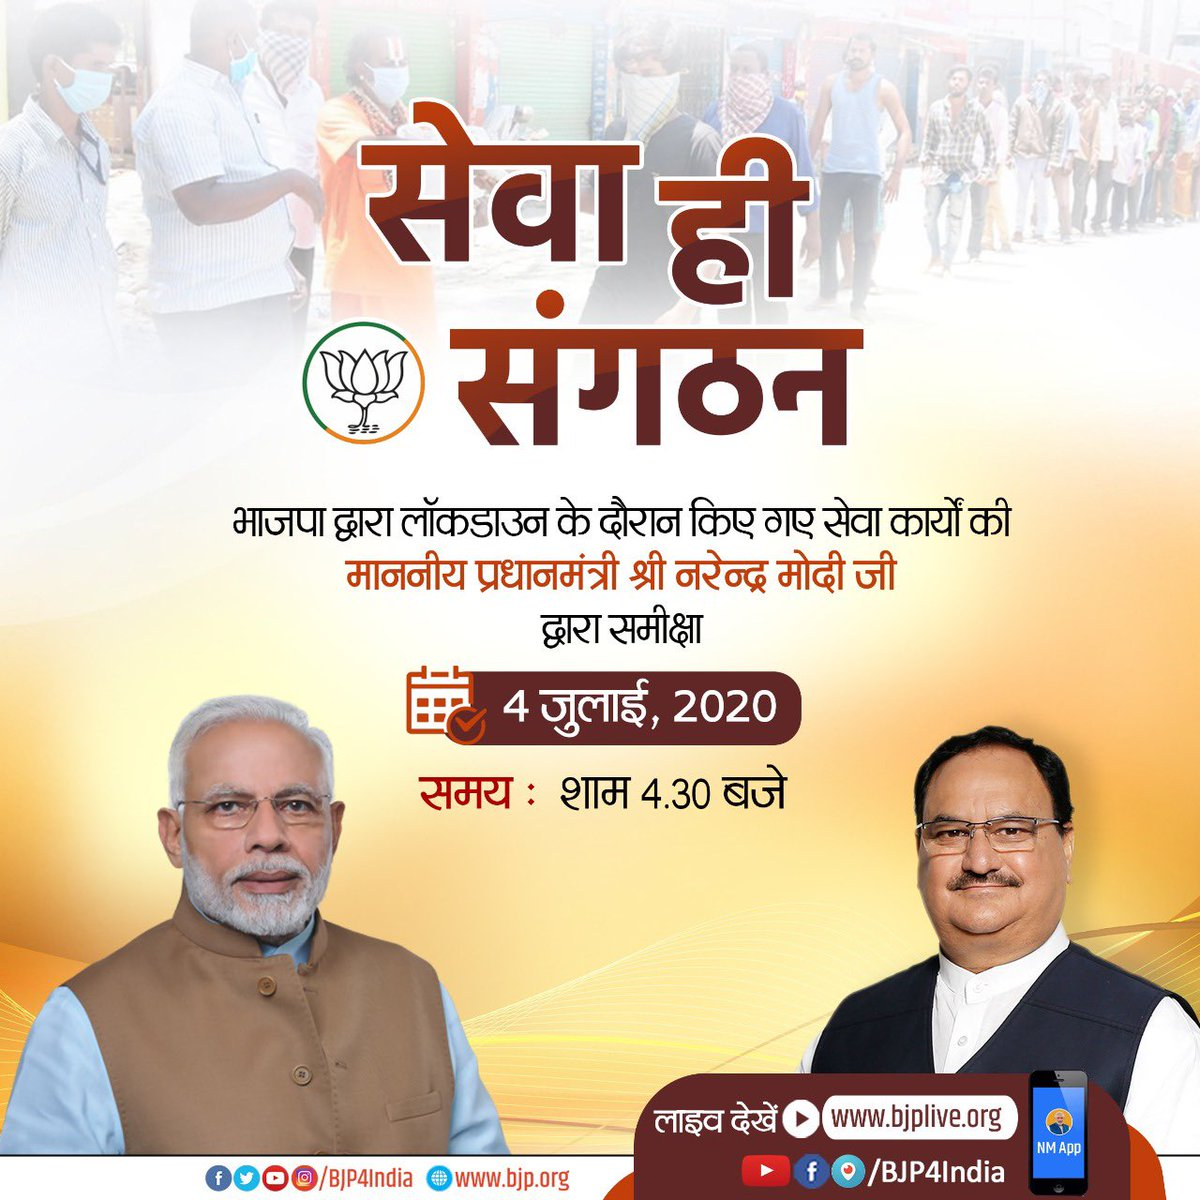 For @BJP4India Karyakartas, serving the nation comes first.   In these challenging times, our Karyakartas have been working tirelessly across India, helping those in need.   Will be discussing these works and the way ahead during the 'Seva Hi Sangathan' interaction at 4:30 PM. https://t.co/t0gXBloBwb